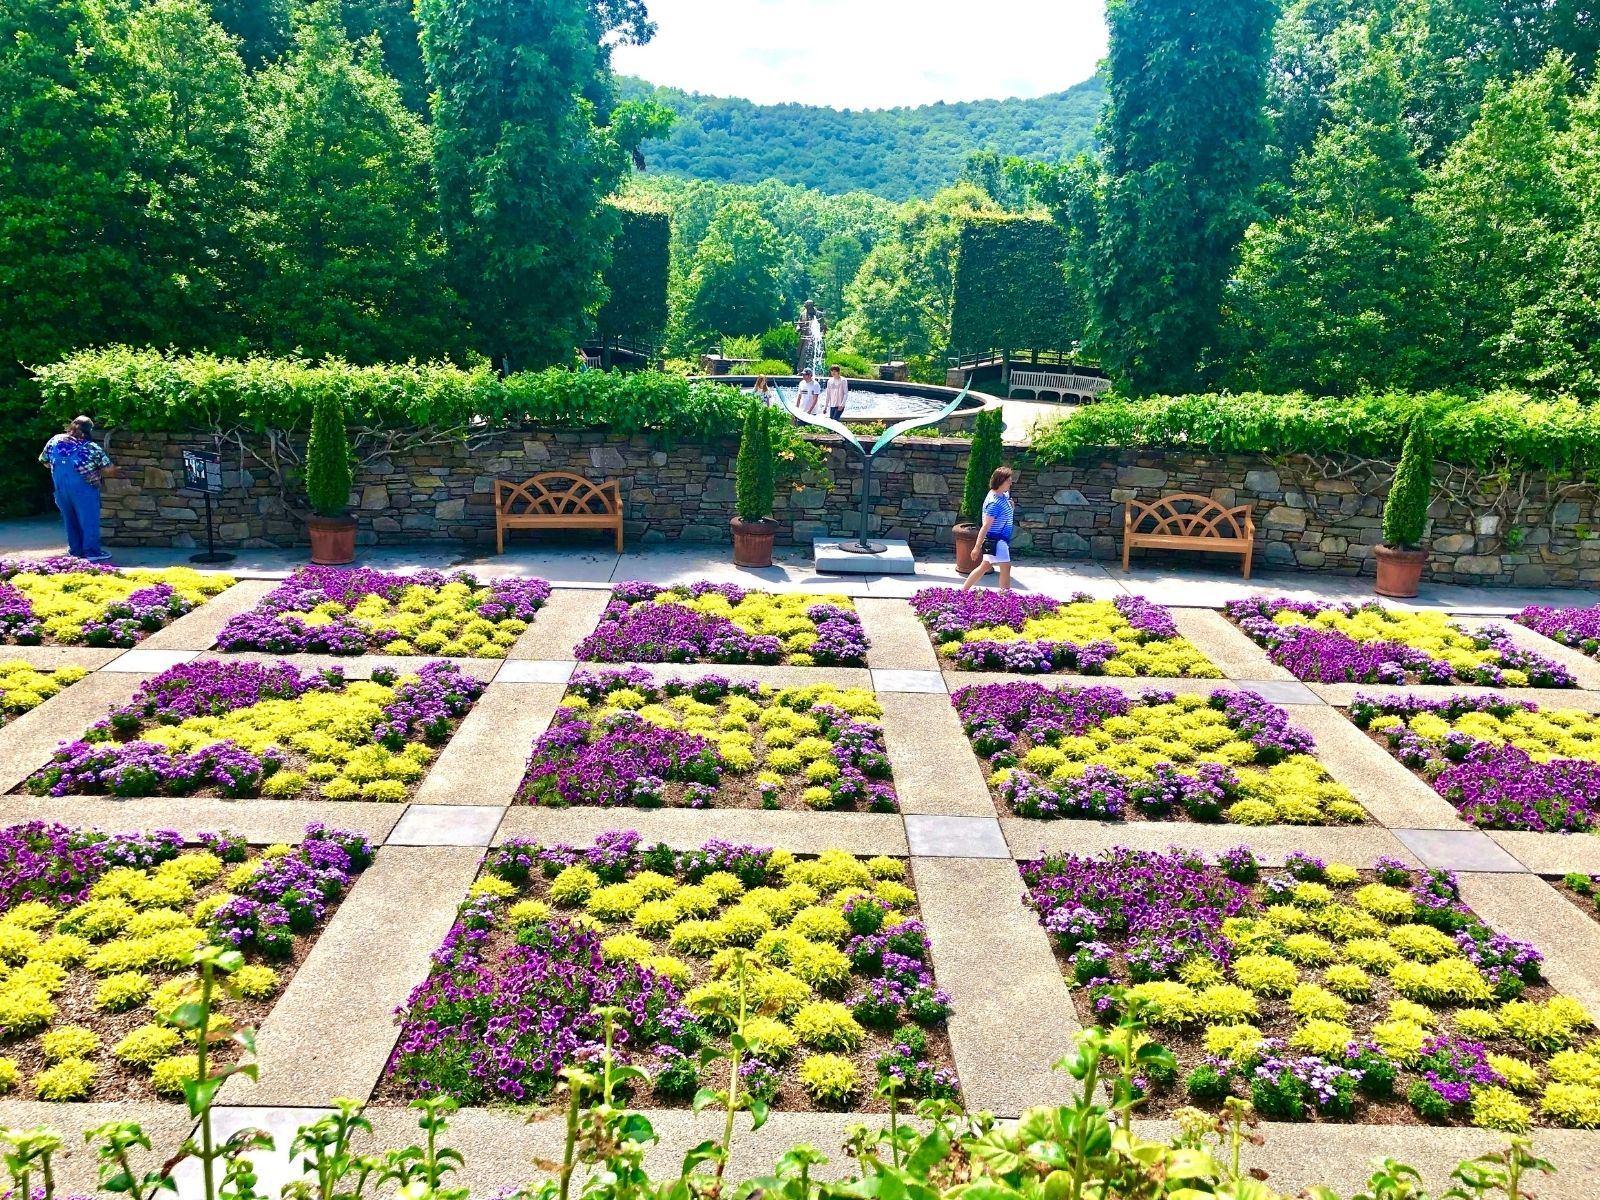 quilt garden with squares of bright yellow and purple flowers